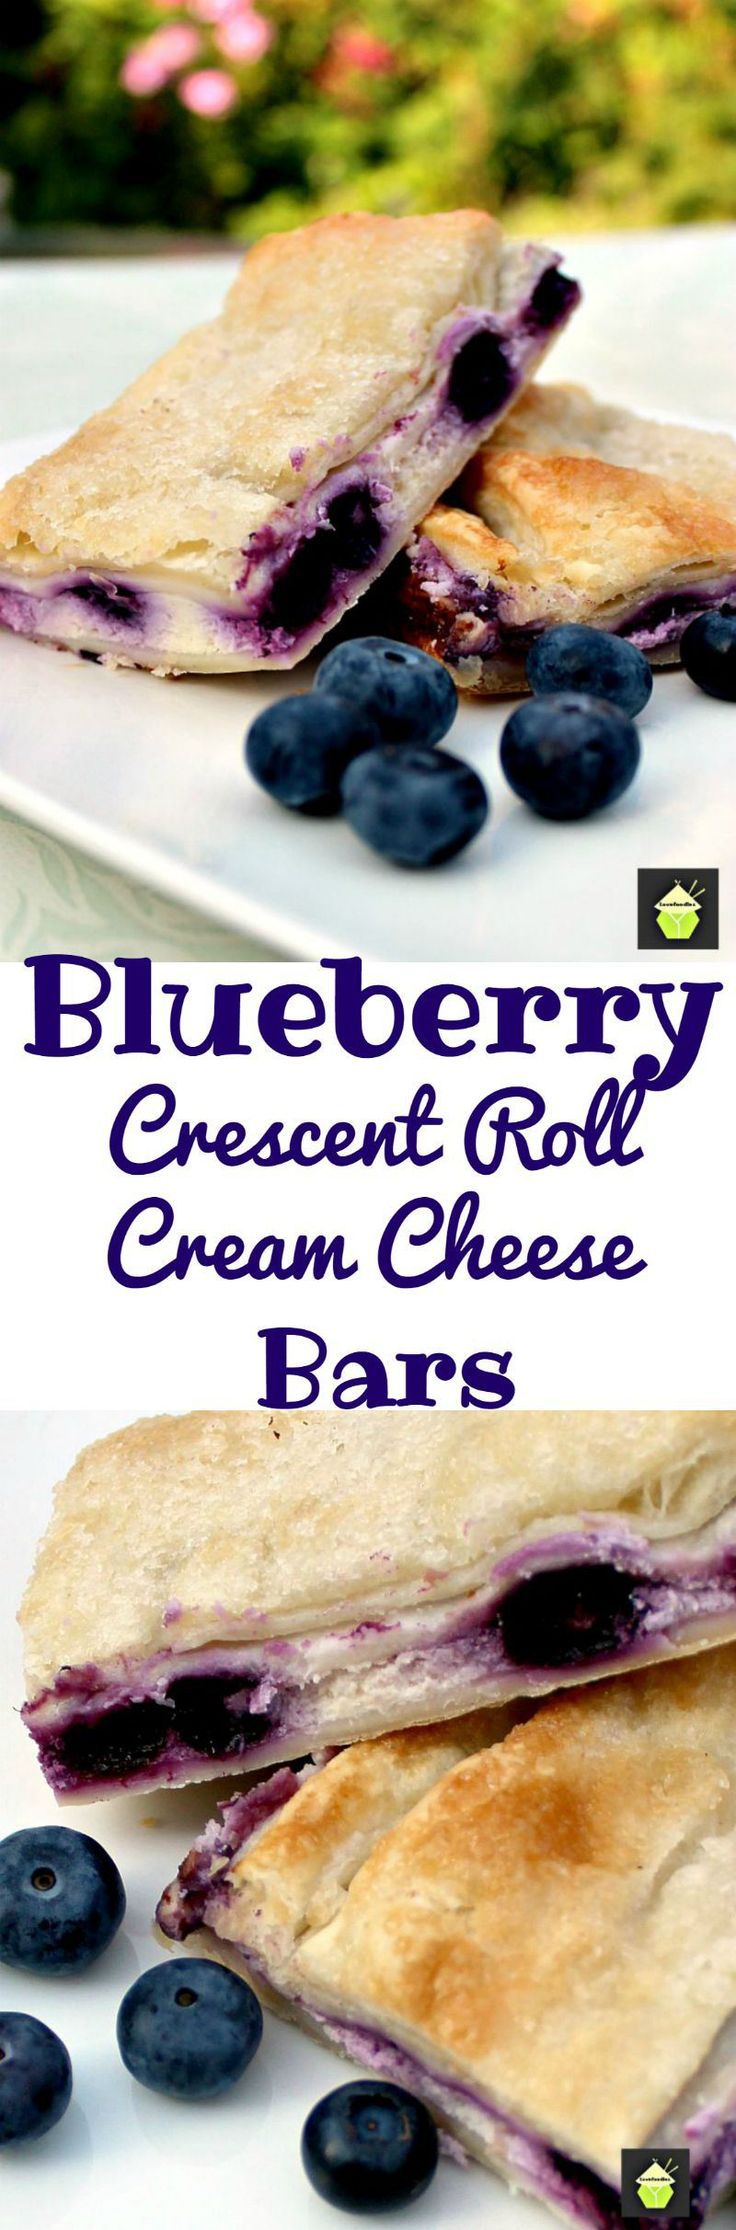 Blueberry Crescent Roll Cheesecake Bars. An incredibly easy recipe with cream cheese and blueberry filling sandwiched between layers of pastry. This tastes amazing!   Lovefoodies.com